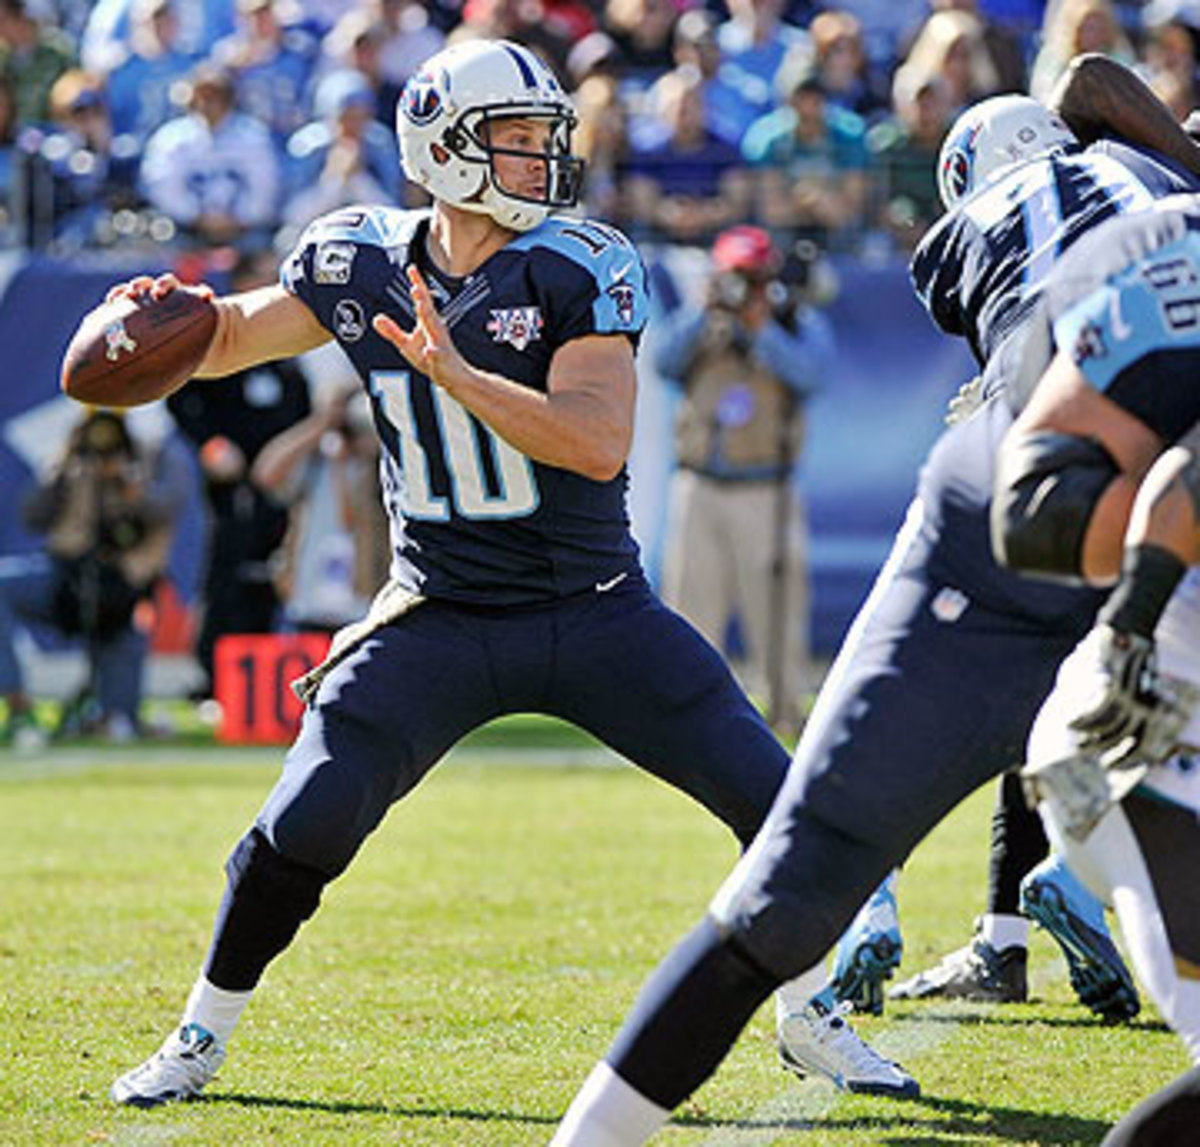 The Titans have said they aren't going to pick up the fifth-year option for Jake Locker. (Frederick Breedon/Getty Images)